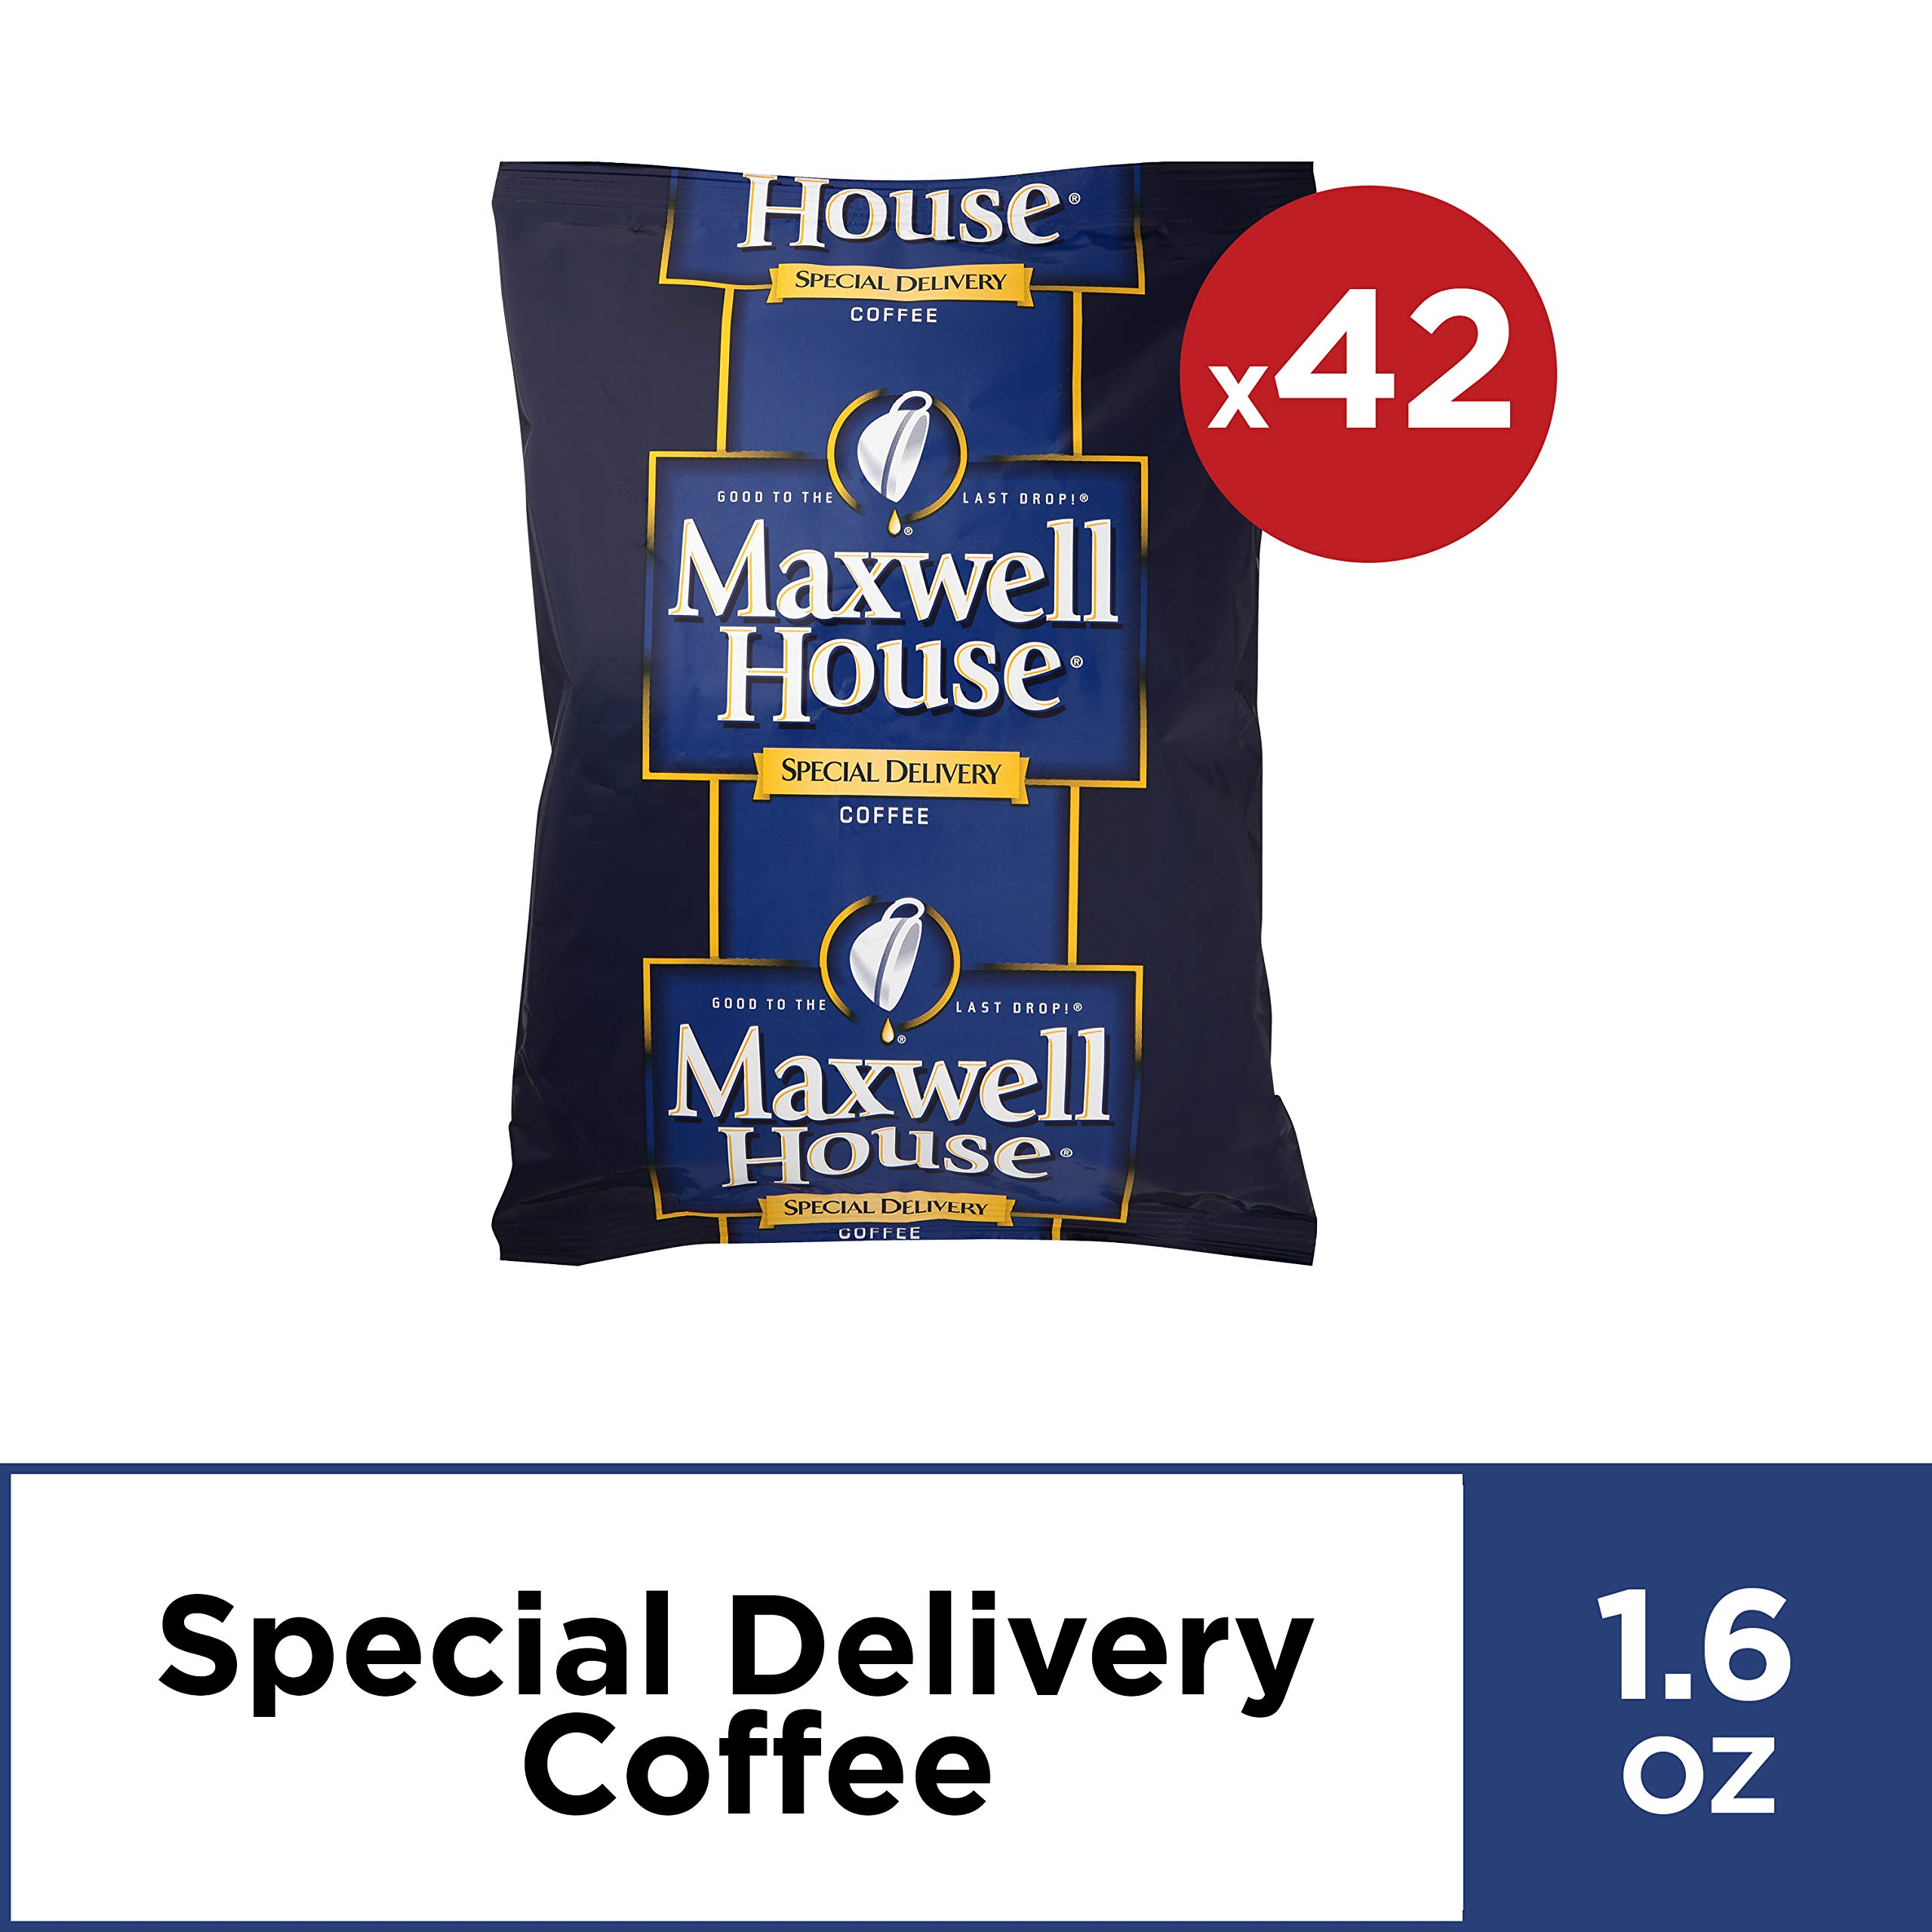 Maxwell House Special Delivery Ground Coffee Single Serve (1.6 oz Bags, Pack of 42)